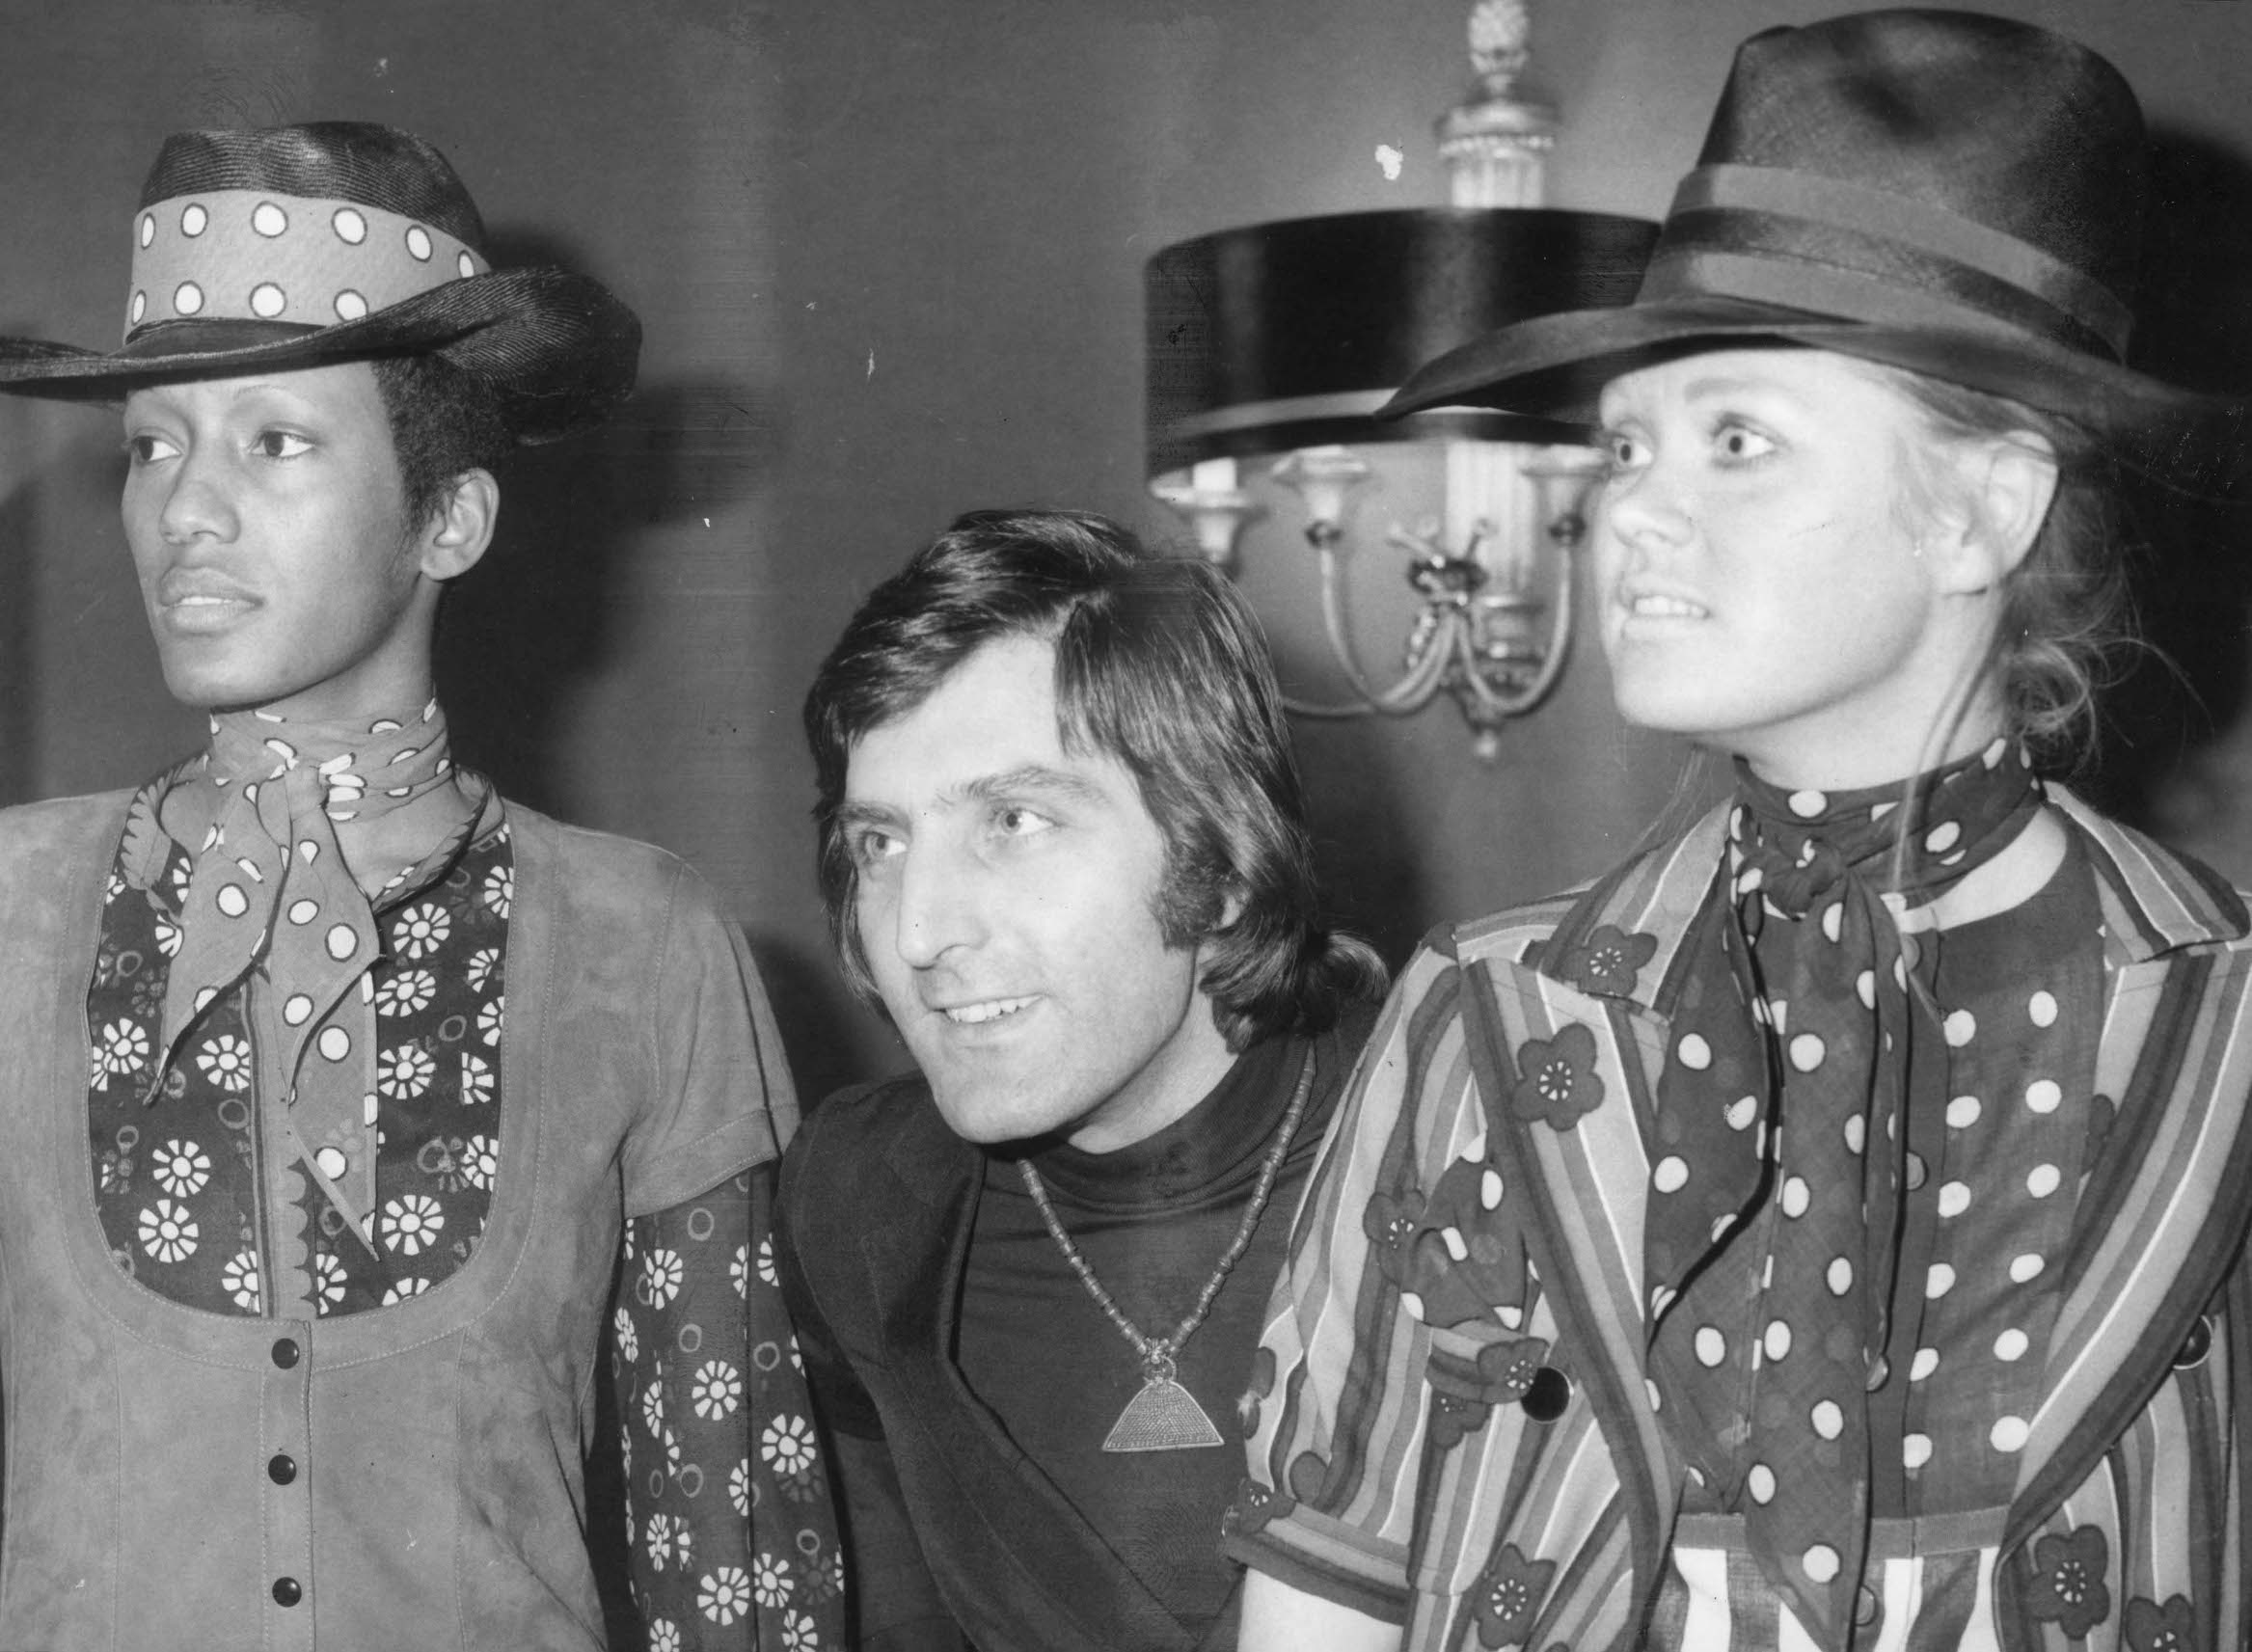 French couturier Emanuel Ungaro with two of his models wearing flower power daisy motifs, gypsy-style scarves and tall hats.    (Photo by Central Press/Getty Images)